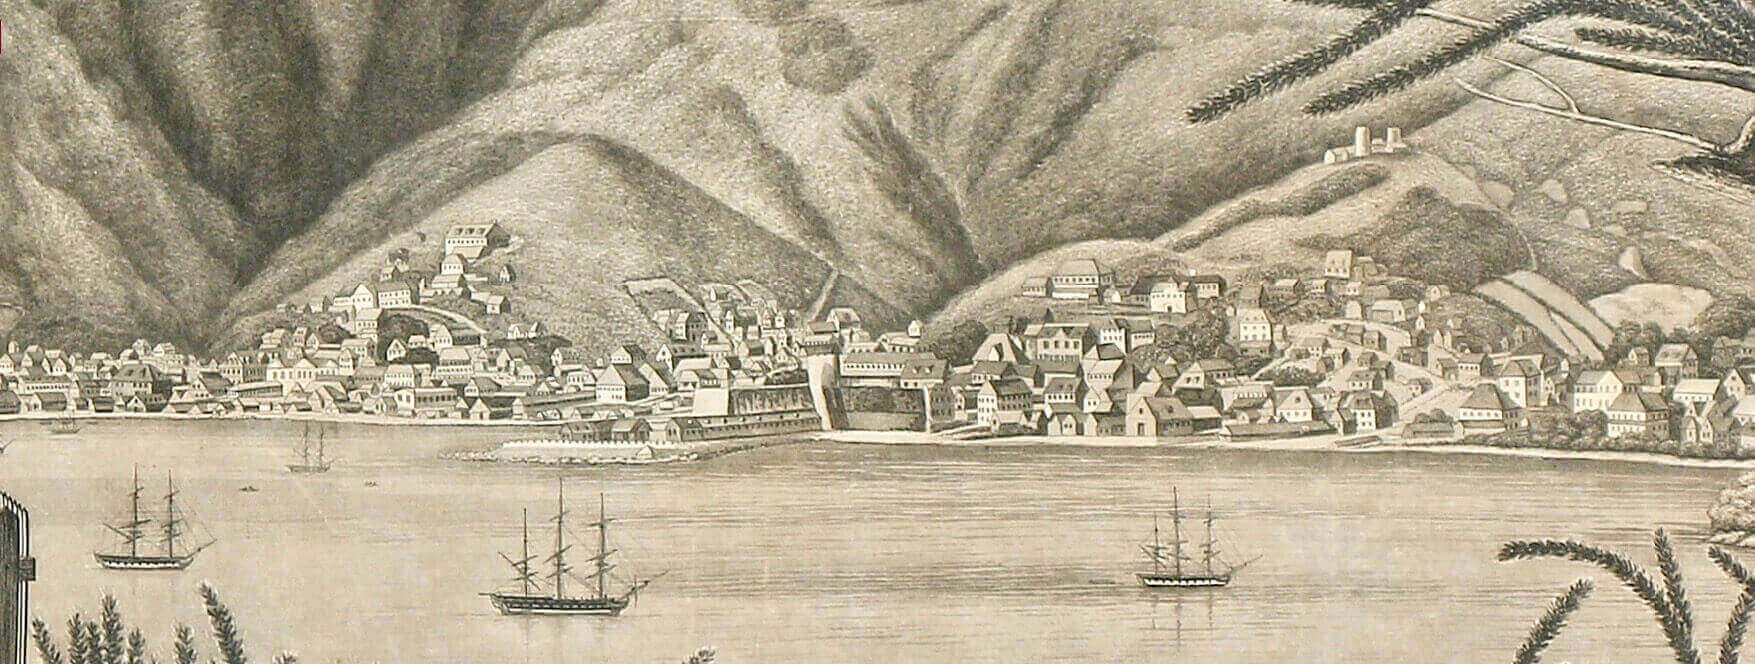 View of St. Thomas from Havensight, Danish West Indies ~ 1809